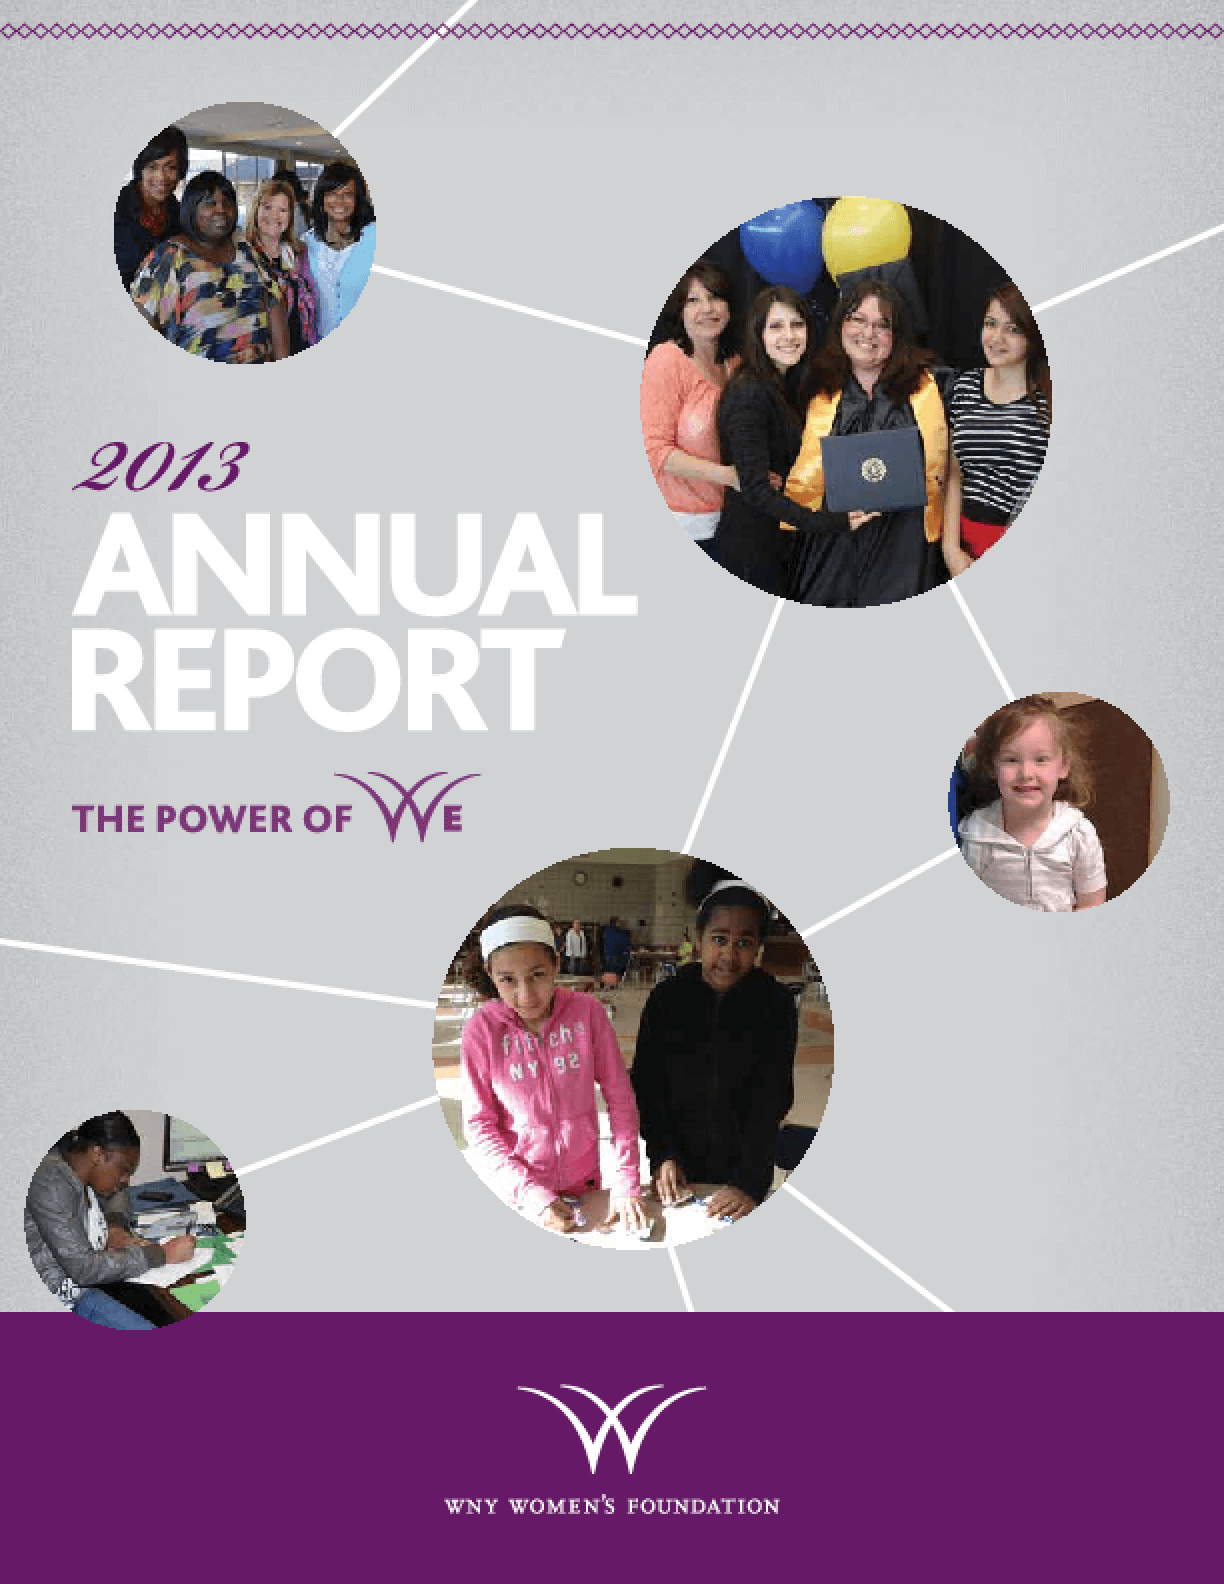 WNY Women's Foundation, 2013 Annual Report